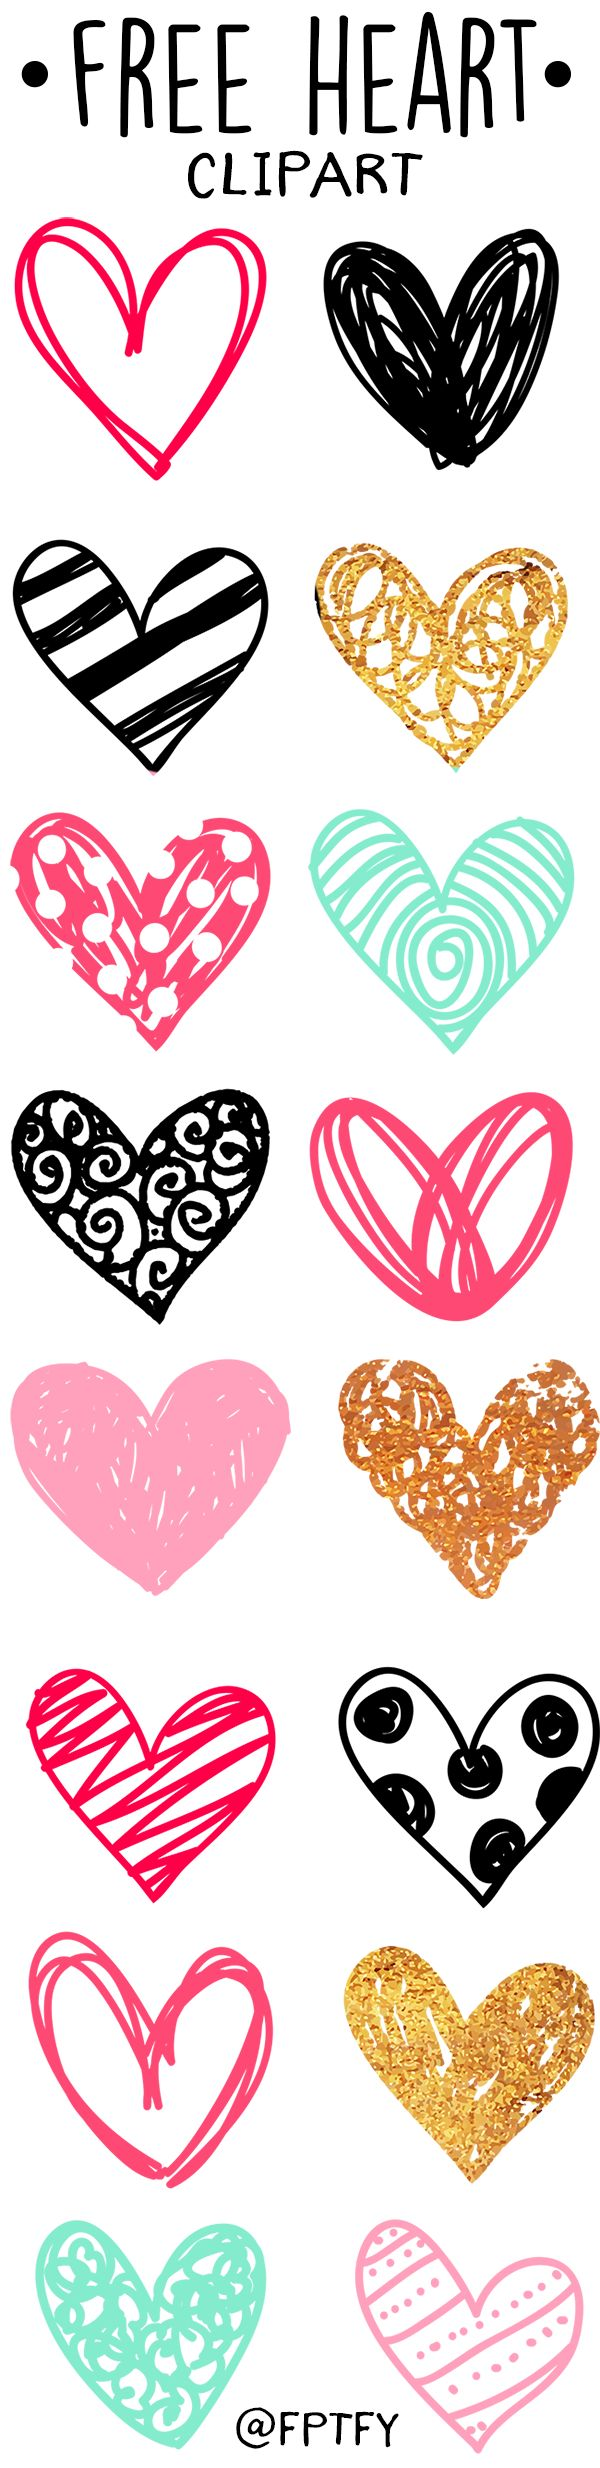 78 best images about clip art on pinterest hand washing clip art - Doodle Heart Clip Art